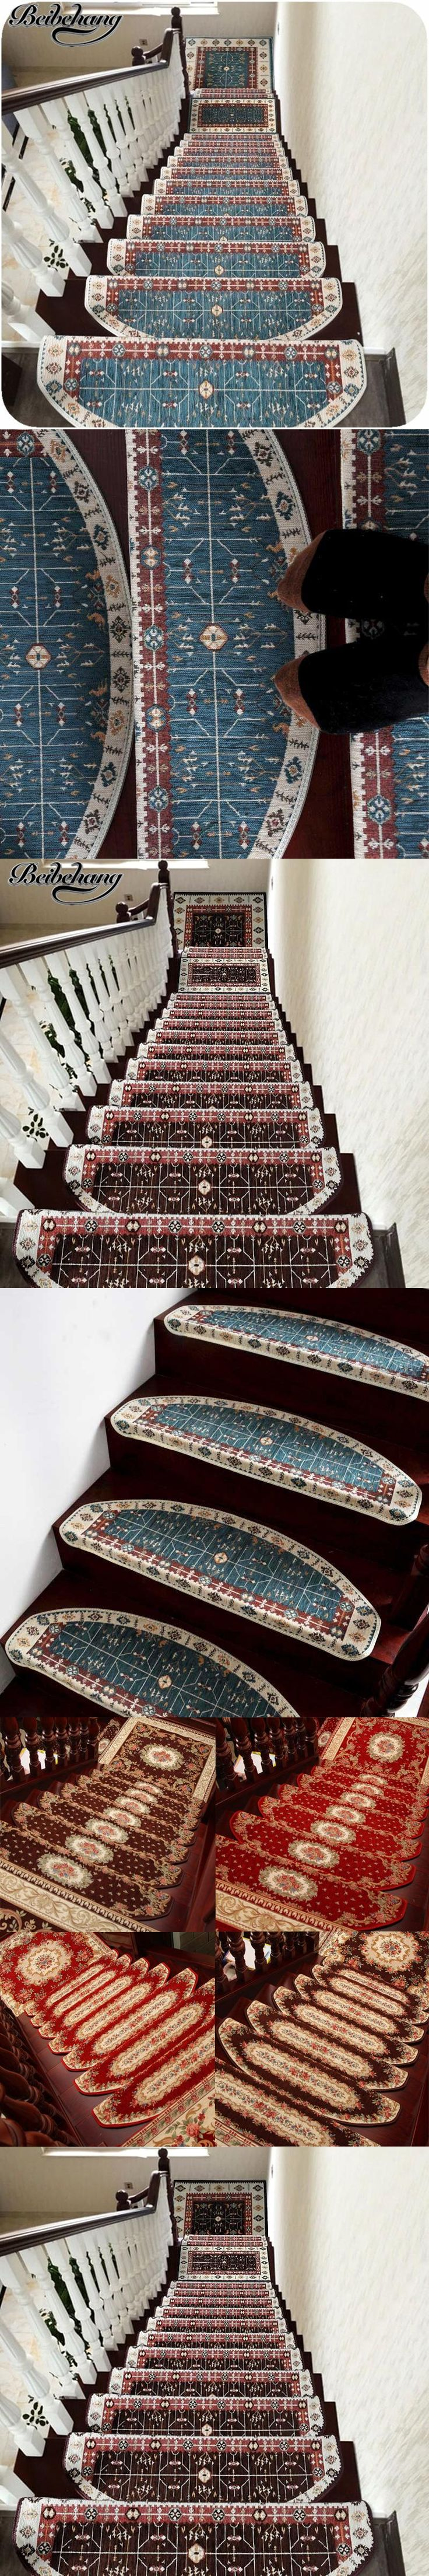 beibehang High - end home full floor mats European - style plastic - free anti - skid floor stairs mats simple floor stepping